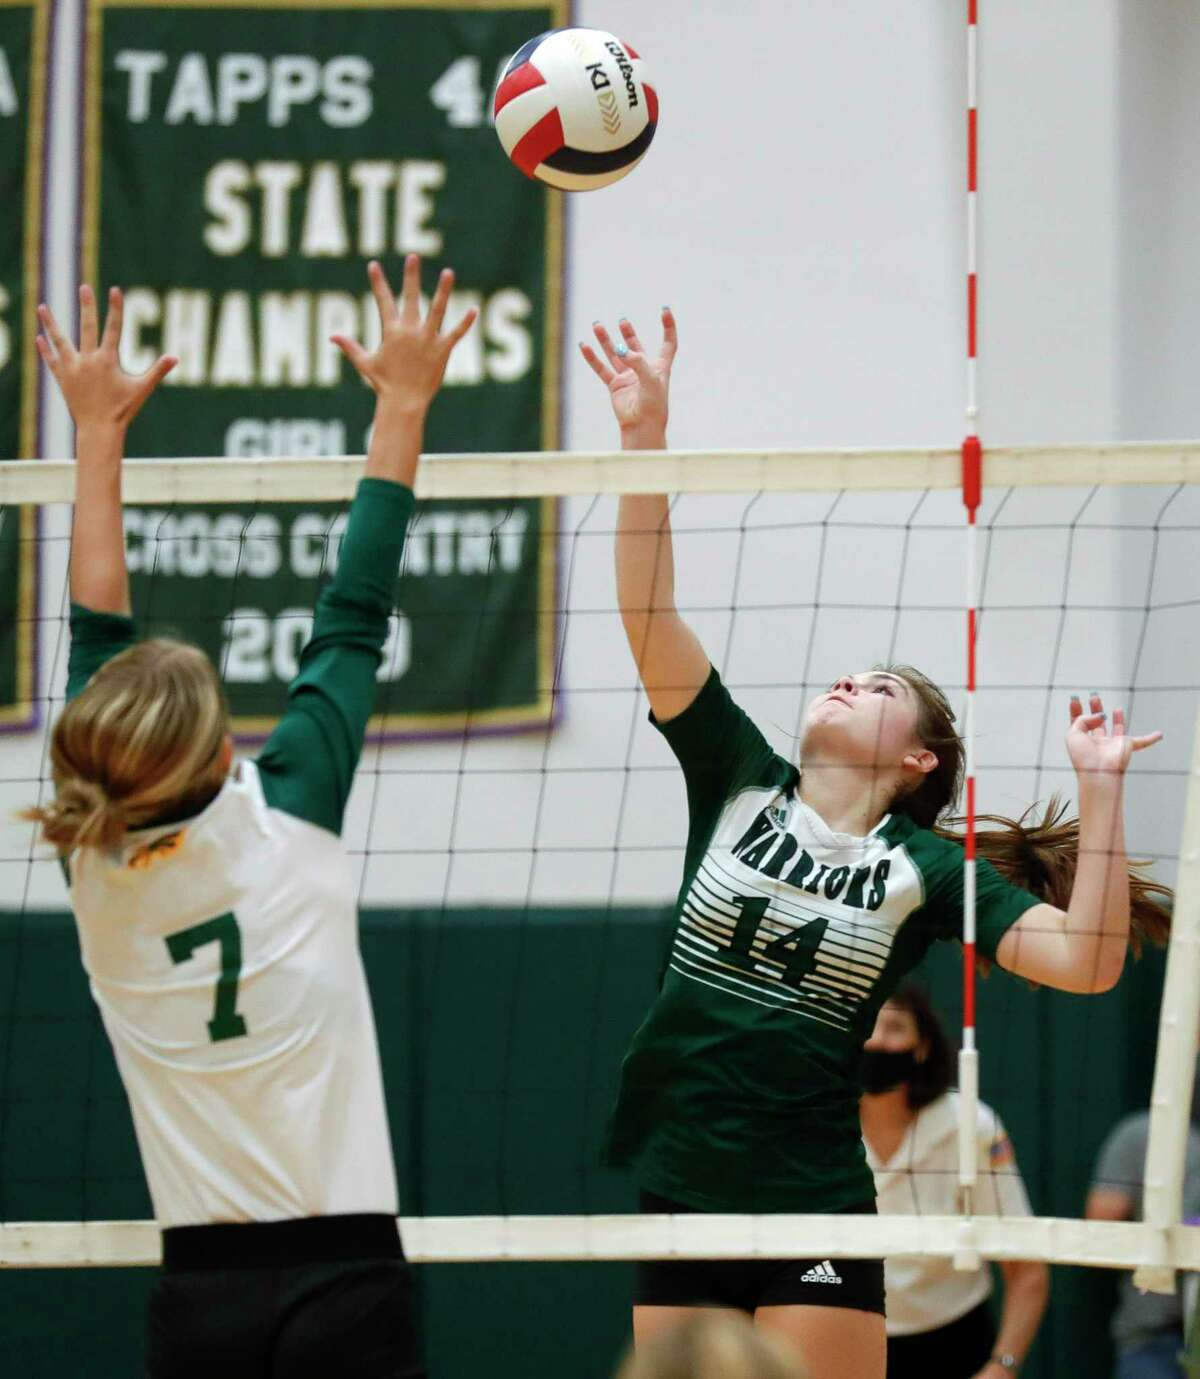 The Woodlands Christian Academy outside hitter Jordan Booth (14) tips the ball over Fort Bend Christian Academy setter Reagan Heflin (7) during the second set of a TAPPS high school volleyball match at The Woodlands Christian Academy, Tuesday, Sept. 29, 2020, in The Woodlands.